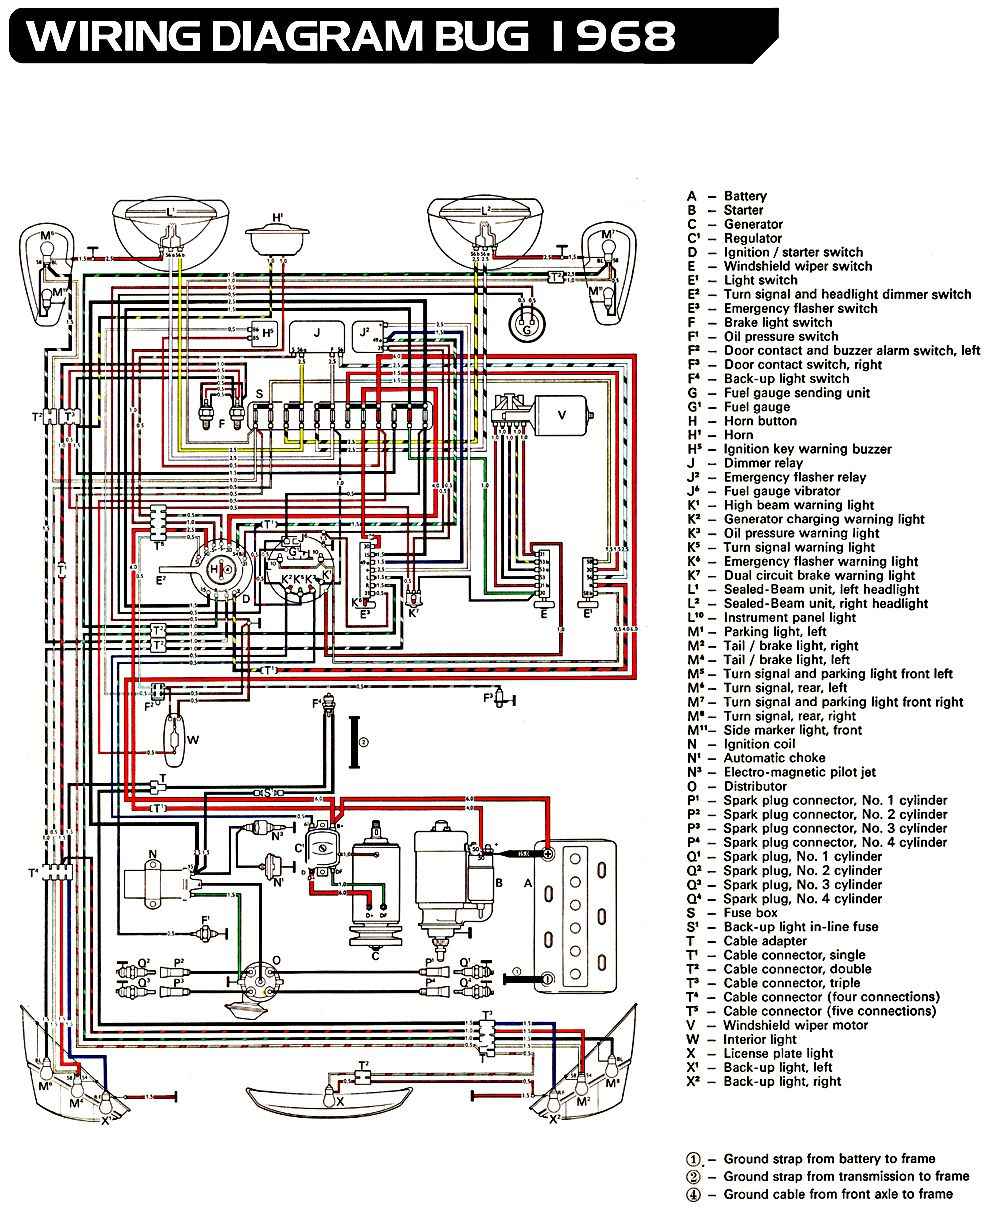 small resolution of 1971 vw wiring diagram wiring diagram inside 1971 vw karmann ghia wiring diagram 1971 vw wiring diagram